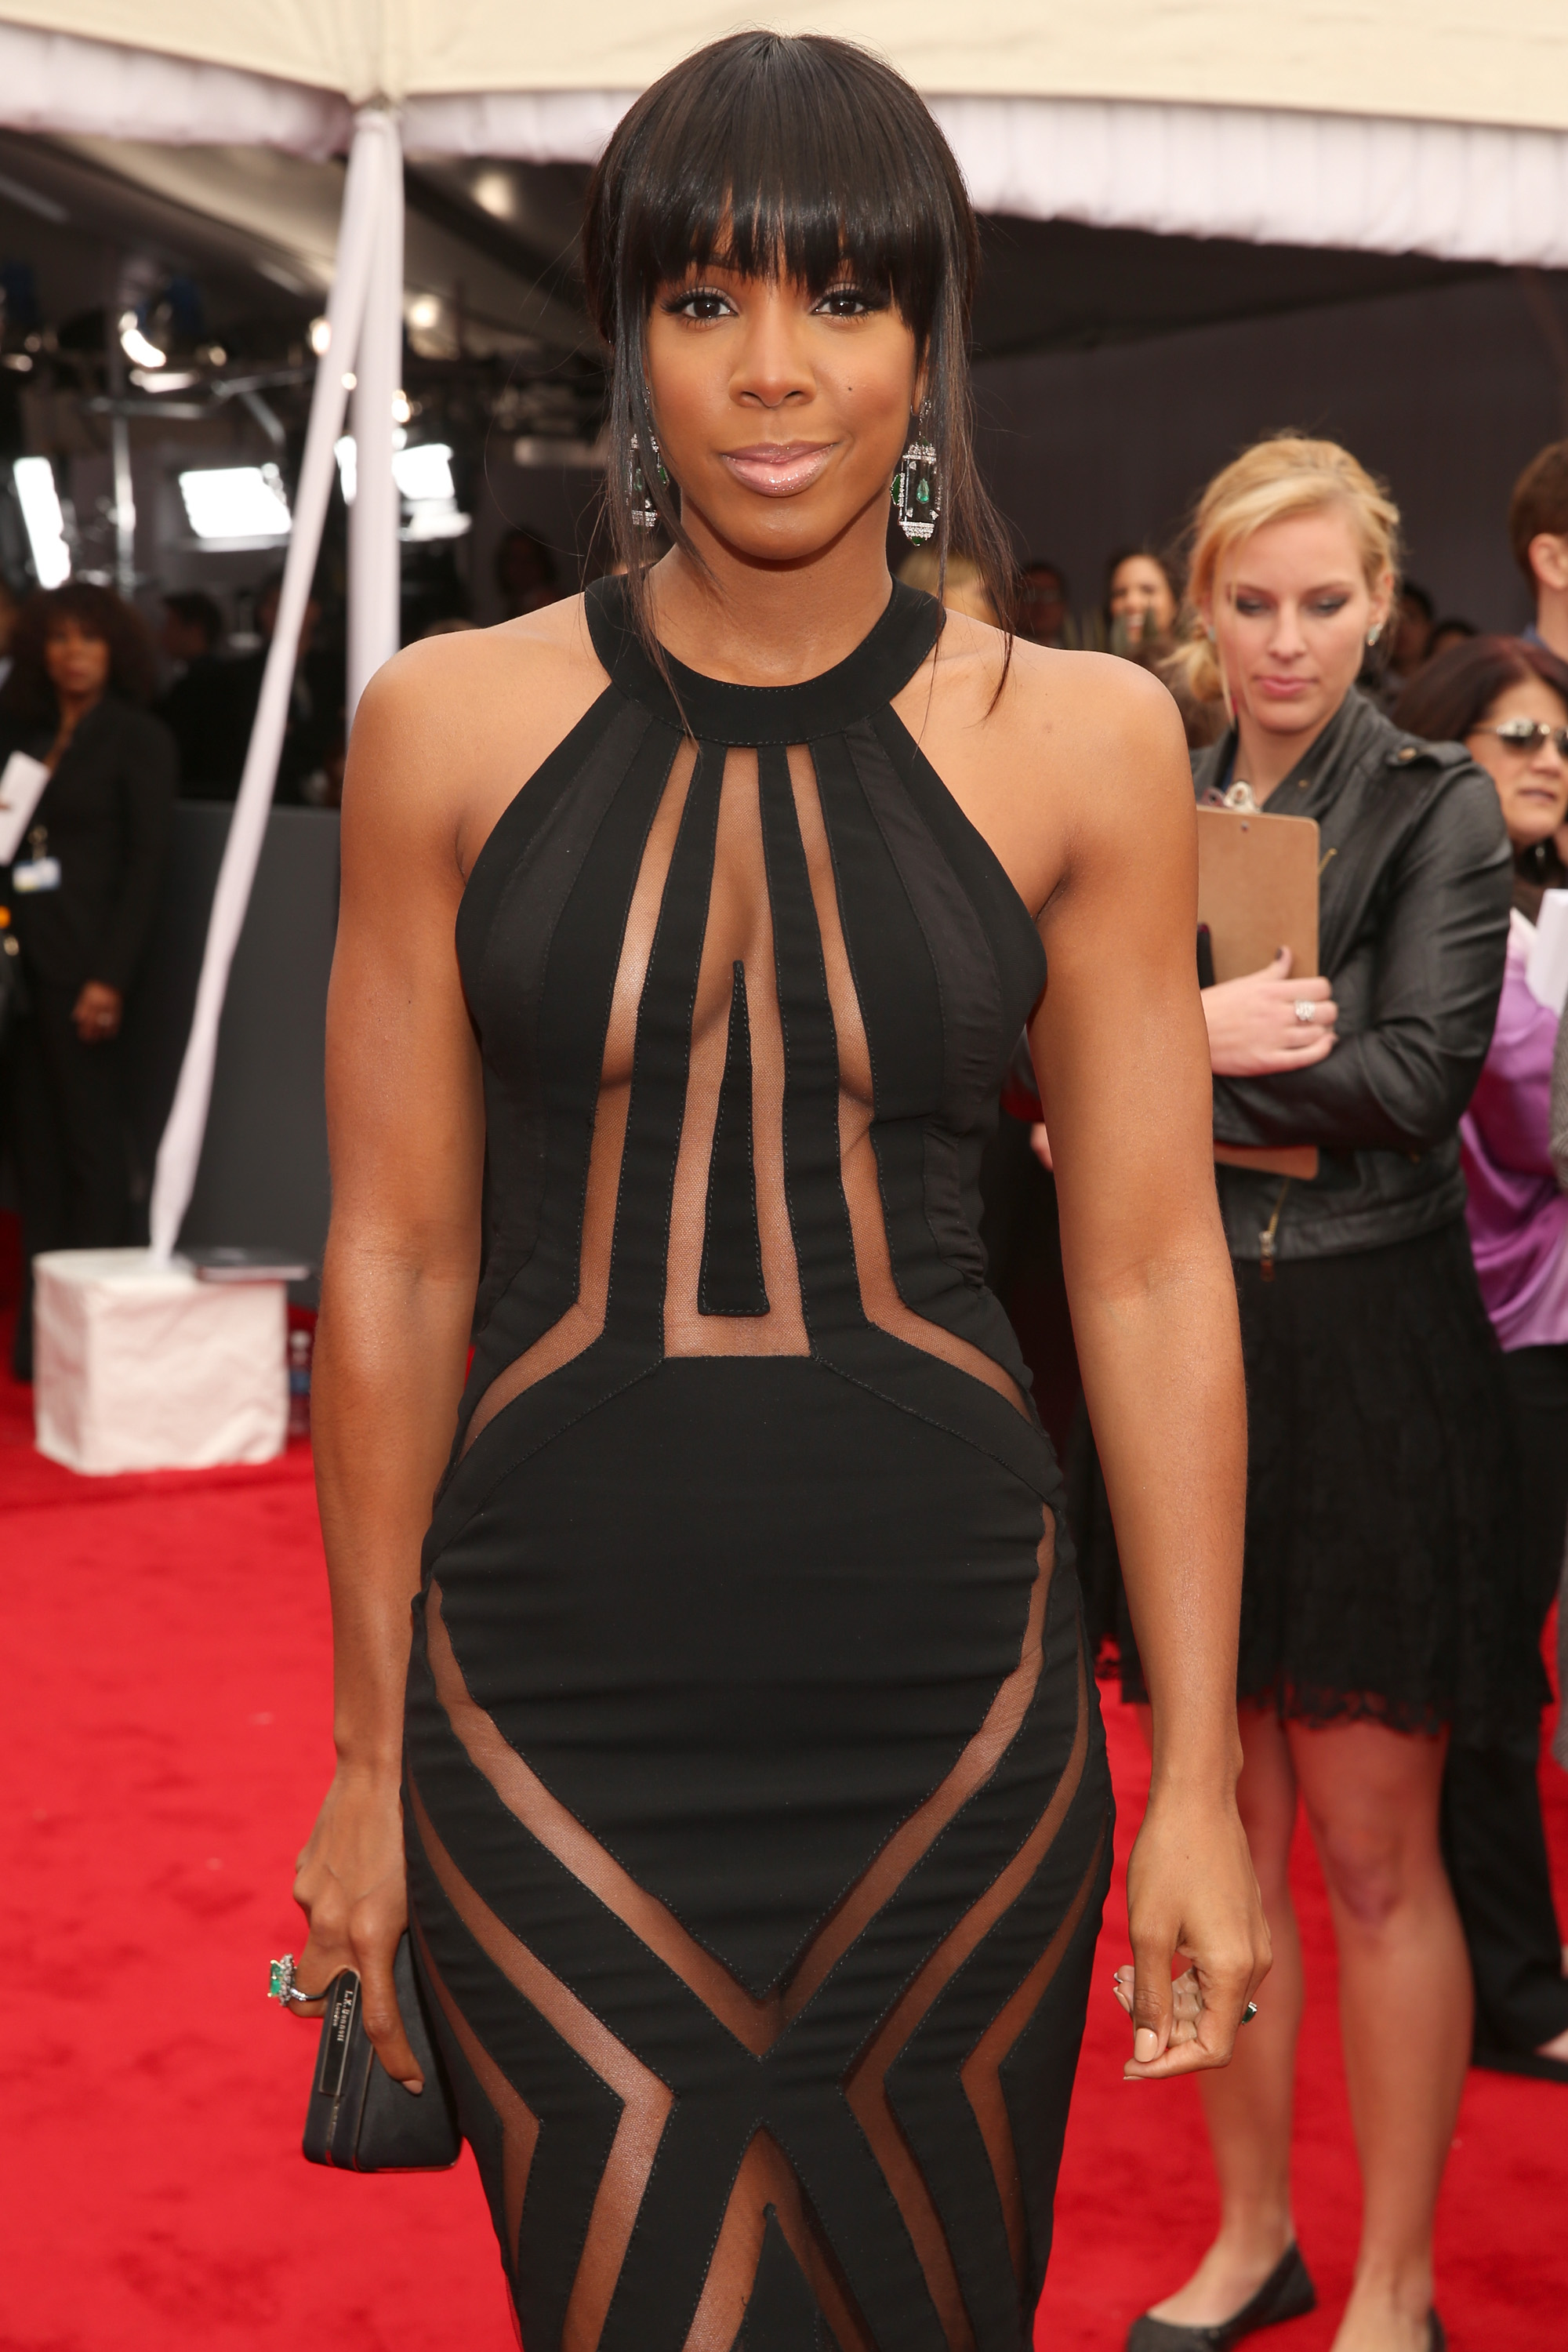 LOS ANGELES, CA - FEBRUARY 10:  Singer Kelly Rowland attends the 55th Annual GRAMMY Awards at STAPLES Center on February 10, 2013 in Los Angeles, California.  (Photo by Christopher Polk/Getty Images for NARAS)